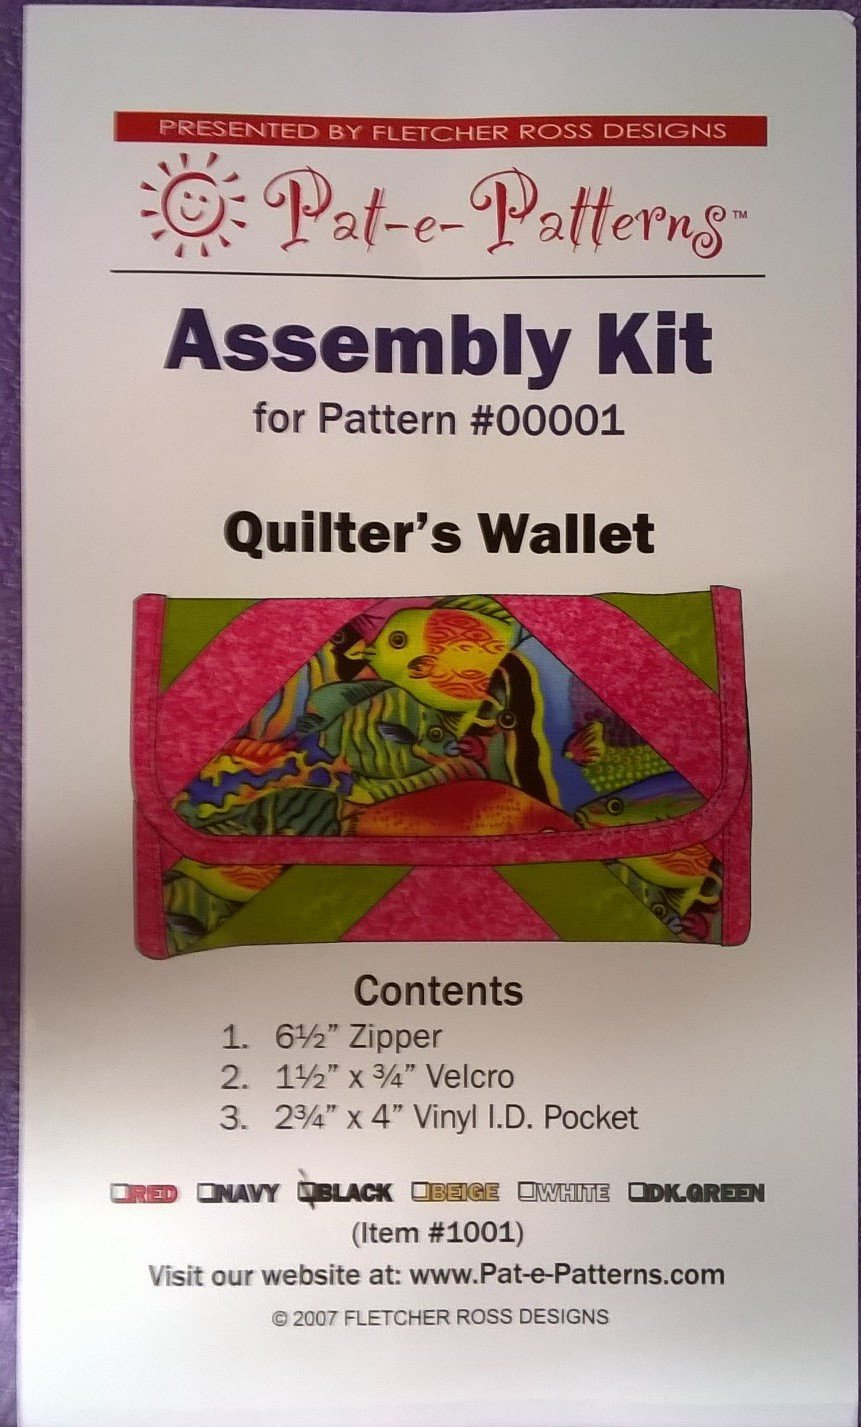 Quilter's Wallet Assembly kit for Pattern #00001